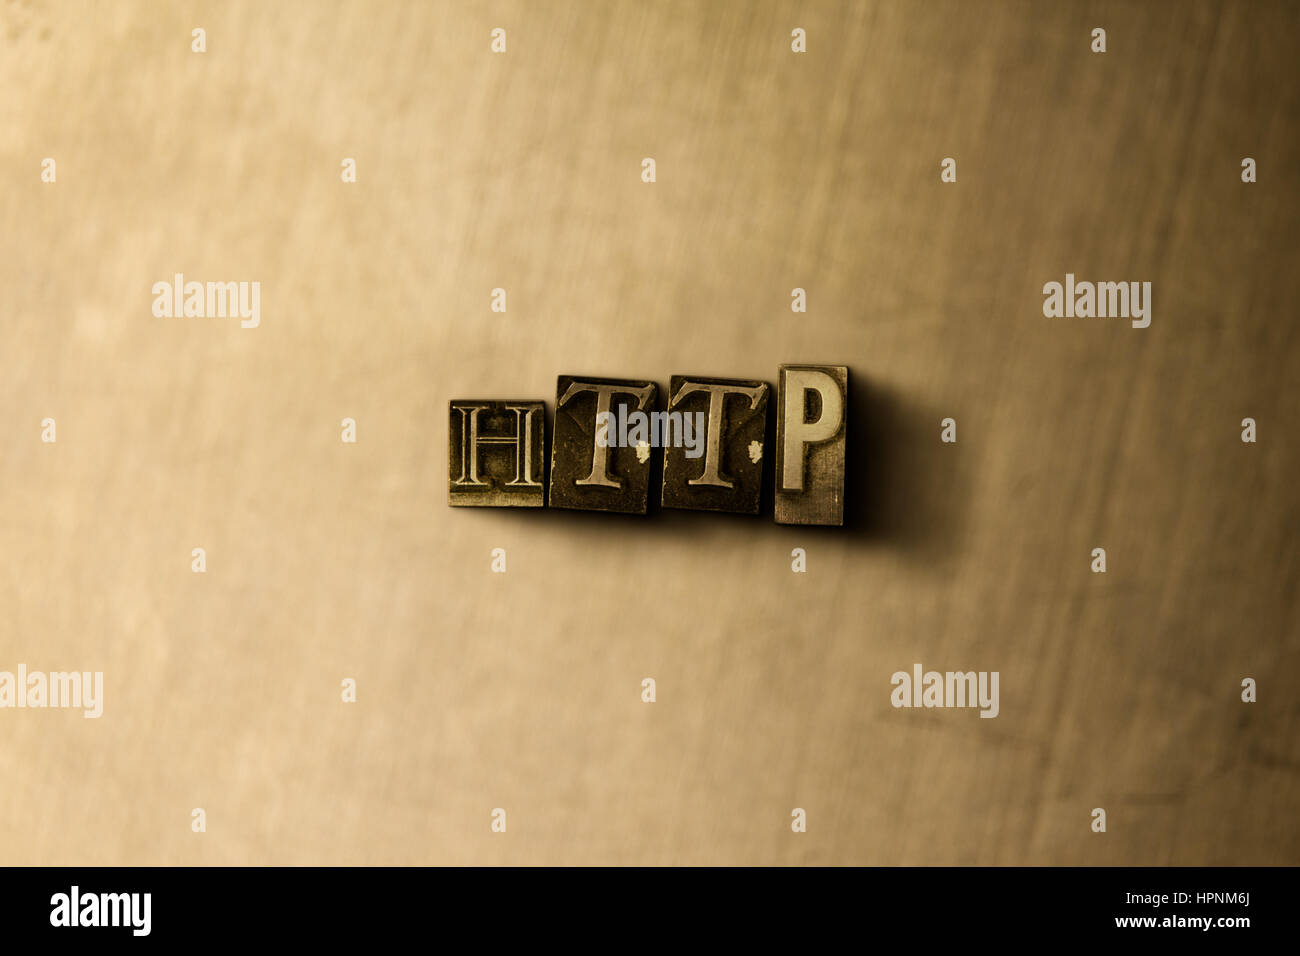 HTTP - close-up of grungy vintage typeset word on metal backdrop. Royalty free stock illustration.  Can be used - Stock Image